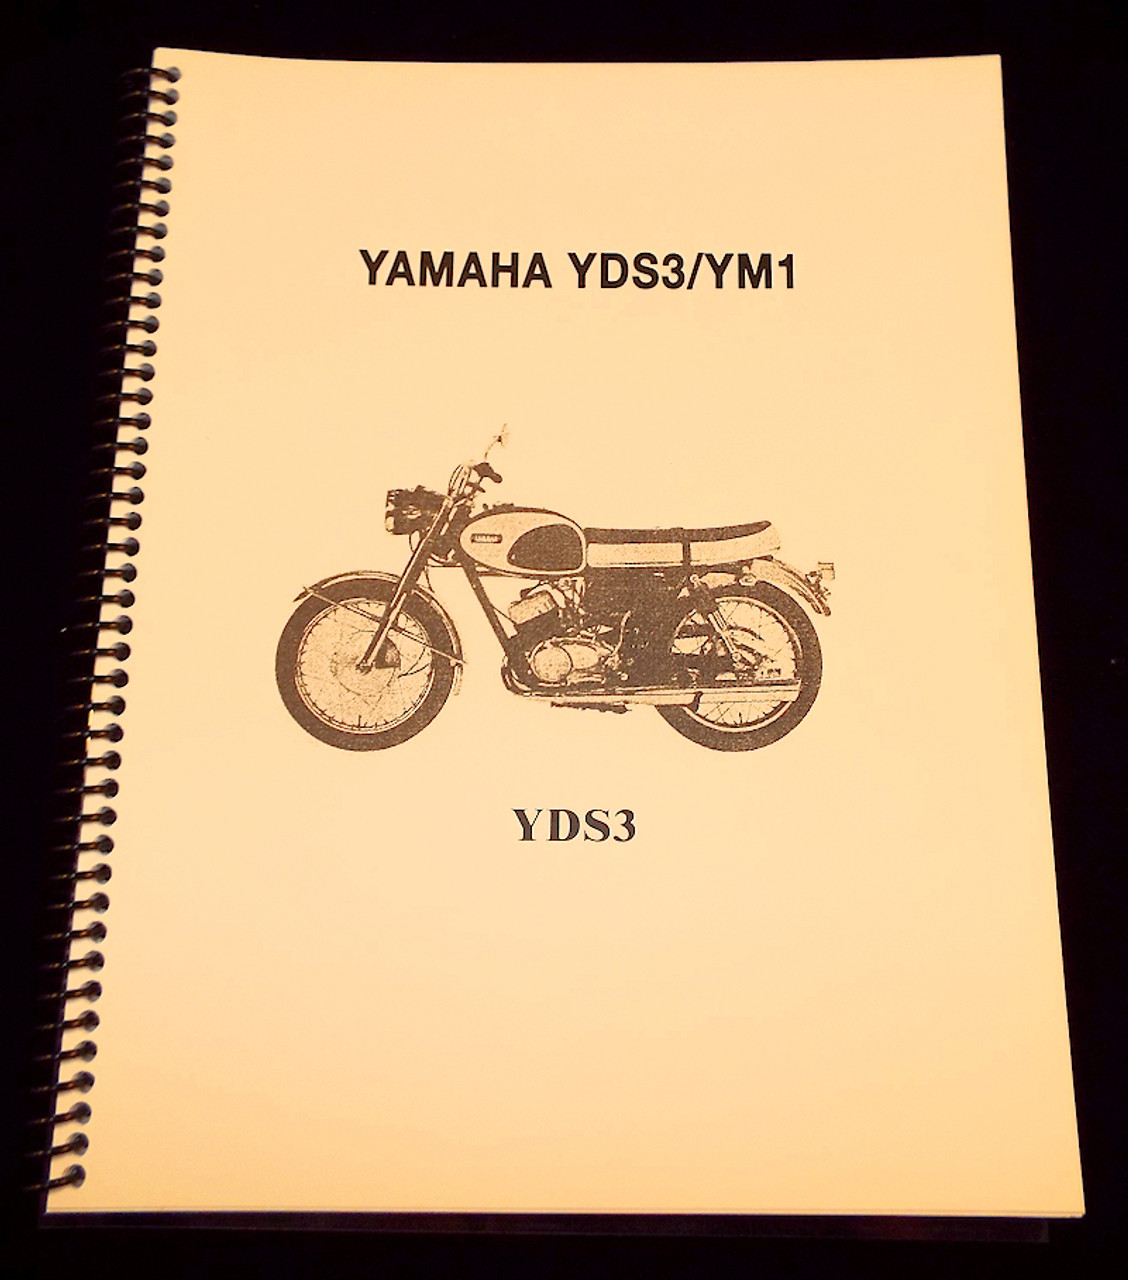 Yamaha Yds3 Ym1 Parts Manual Hvc200131 Yds3 Hvccycle